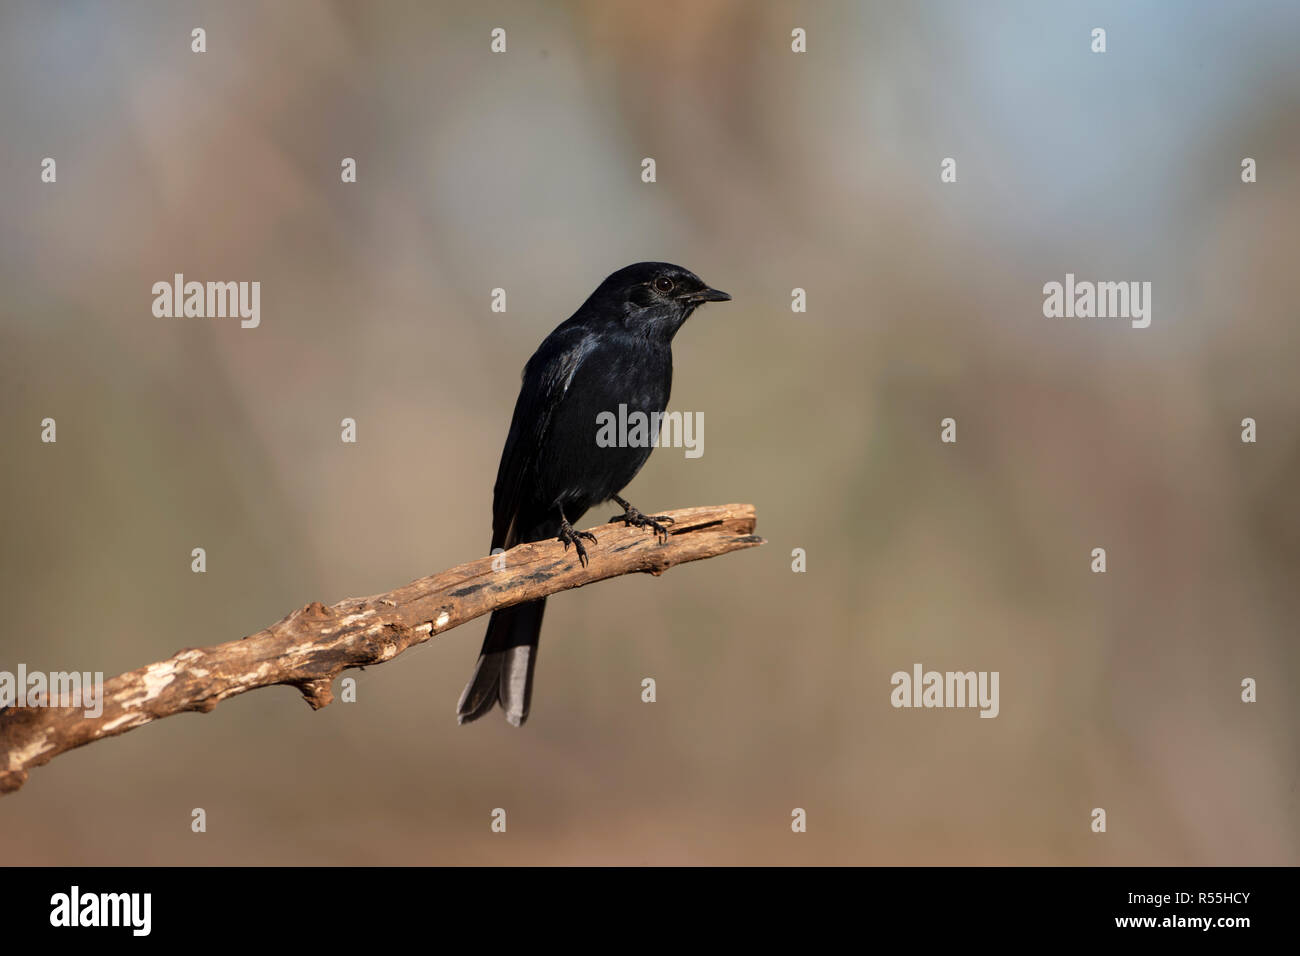 Southern Black Flycatcher Melaenornis pammelaina perching on a bare tree branch with a diffuse background - Stock Image